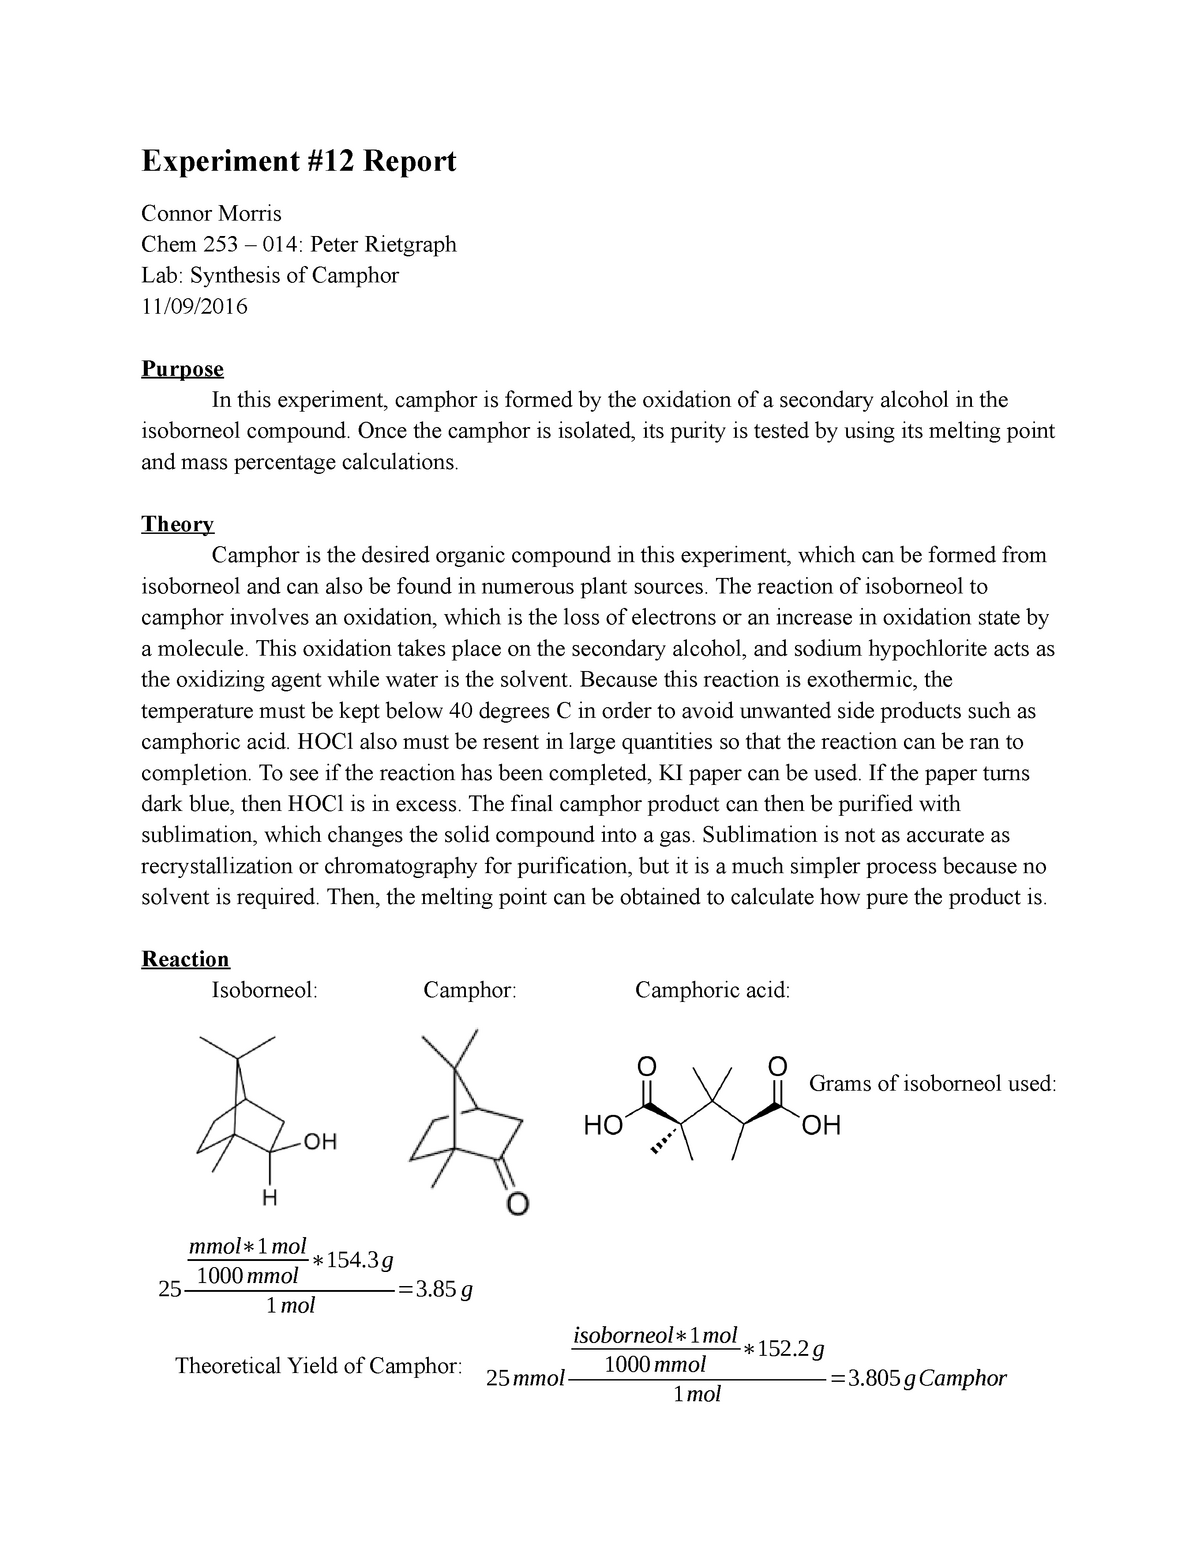 Exp #12 - Synthesis of Camphor - CHEM 253: Organic Chemistry I